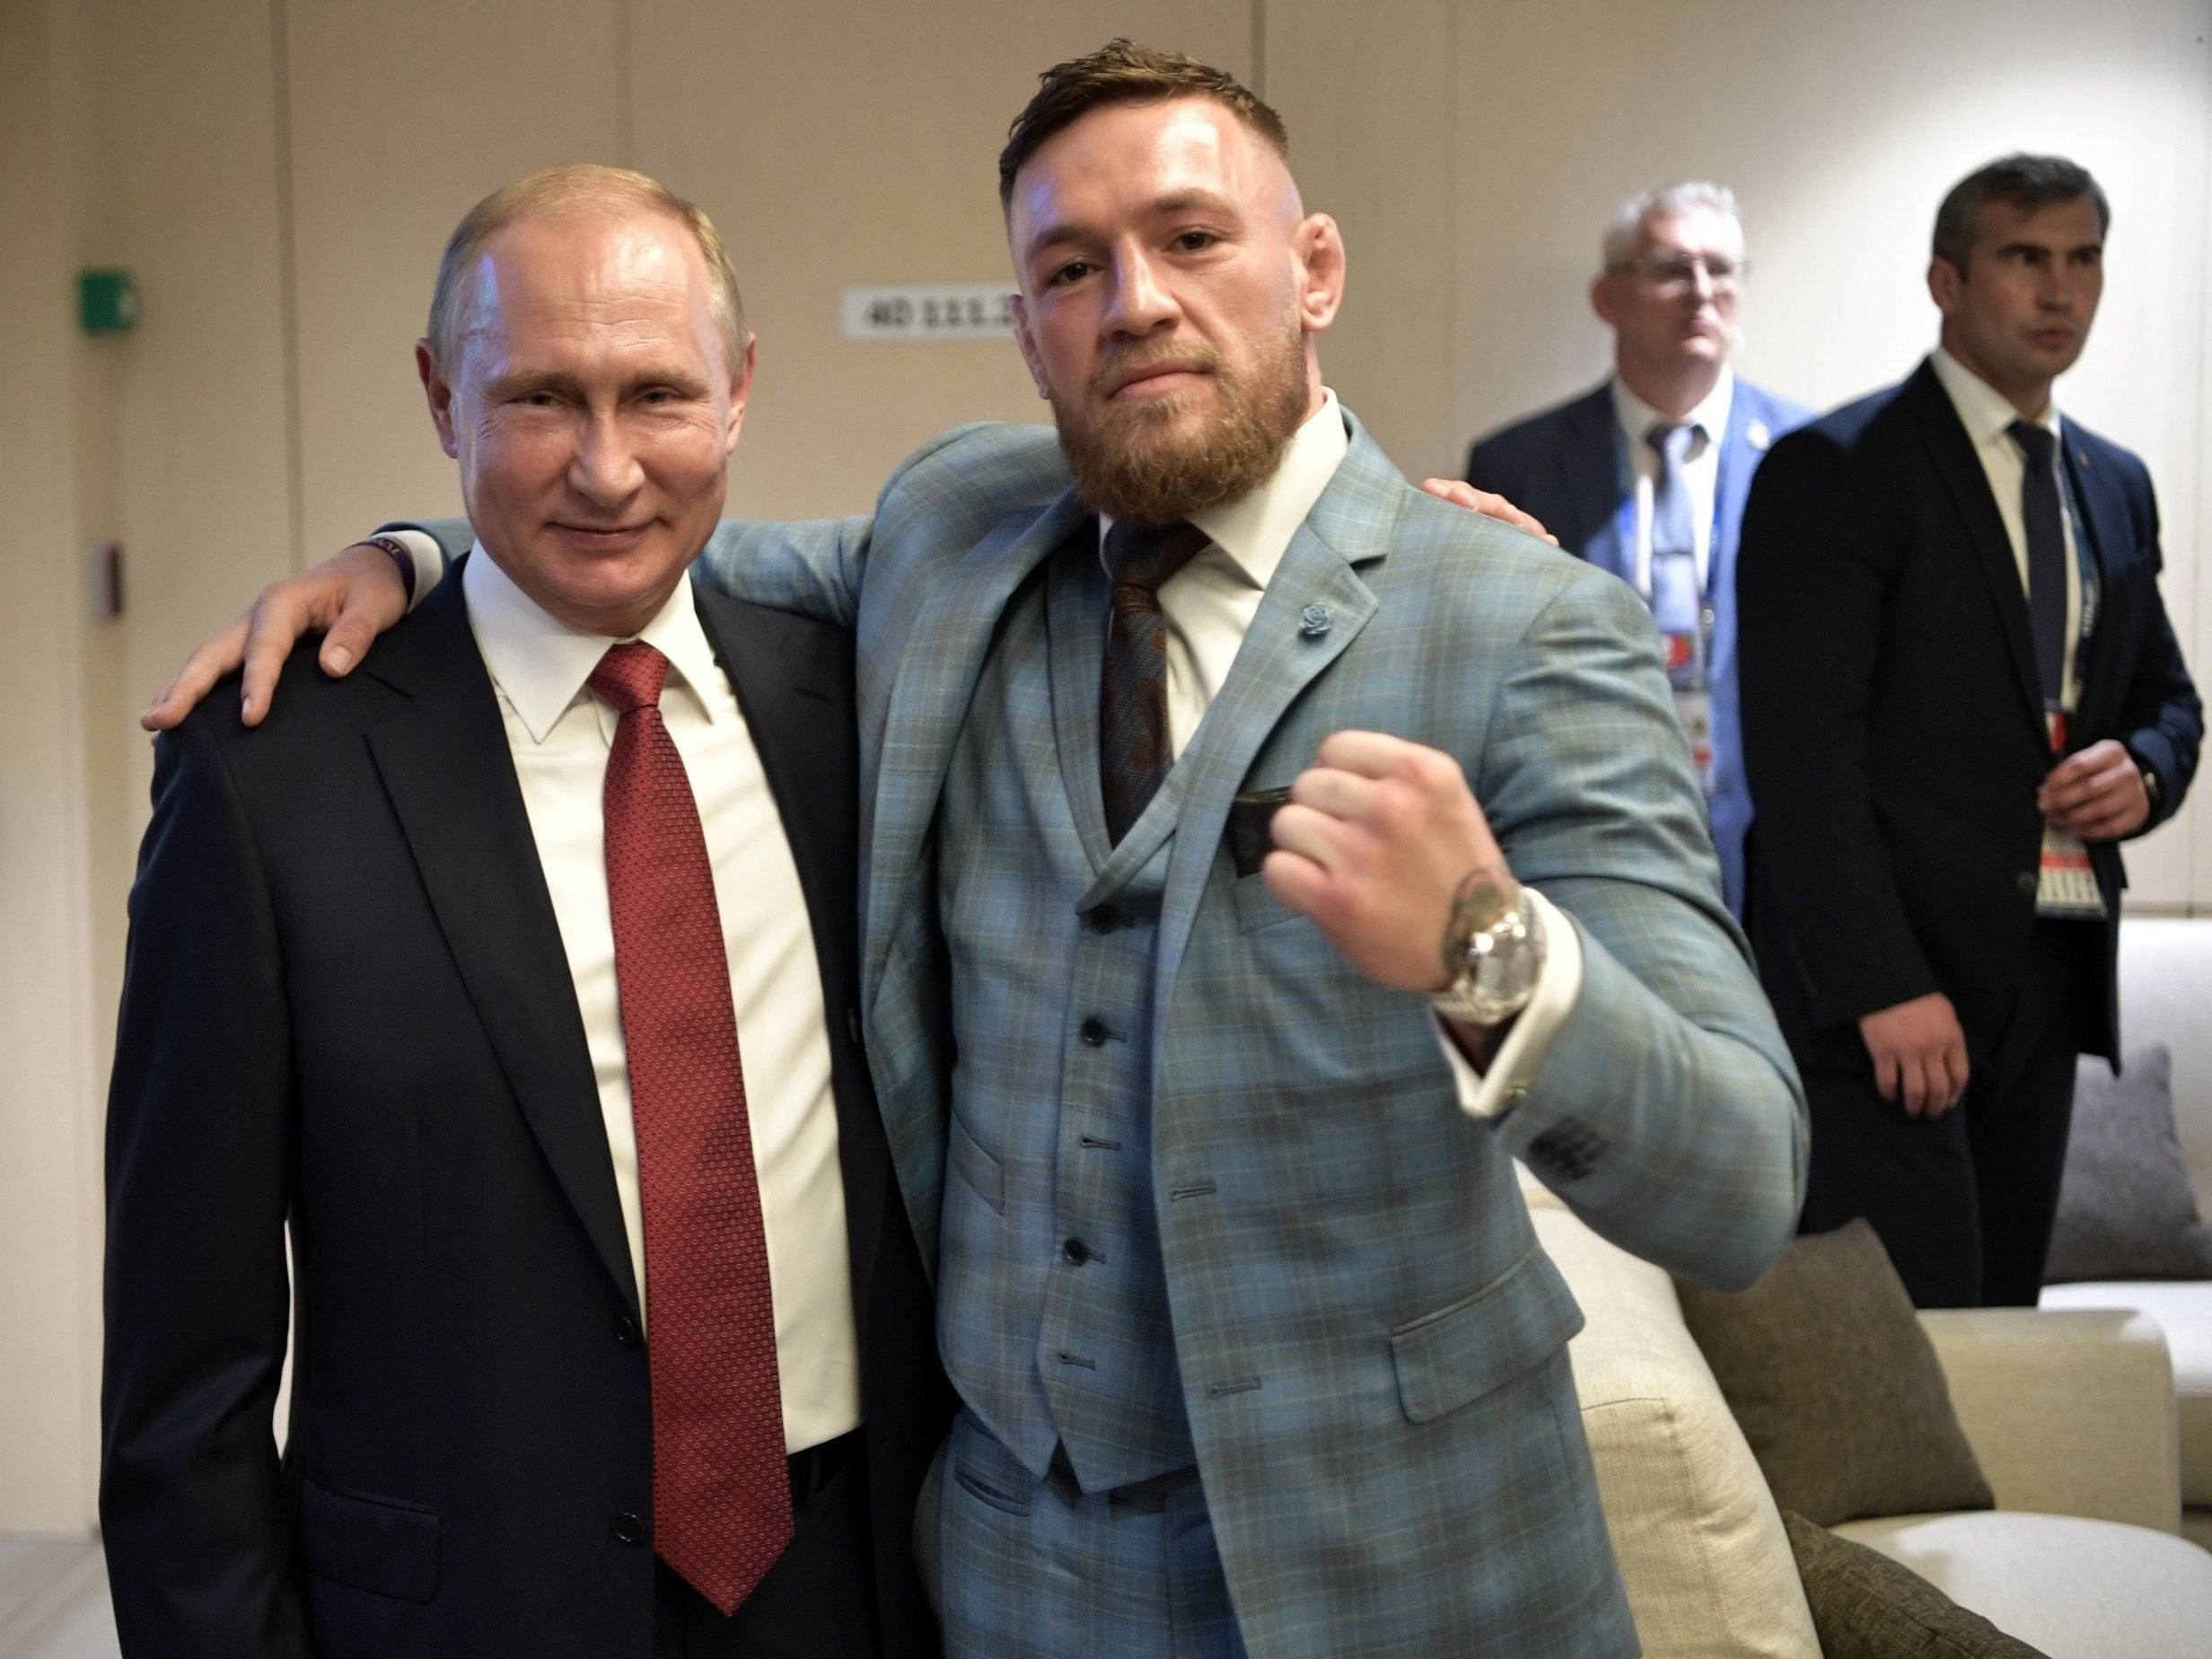 World Cup final 2018: Conor McGregor hails Russia president Vladimir Putin as 'one of the greatest leaders of our time'